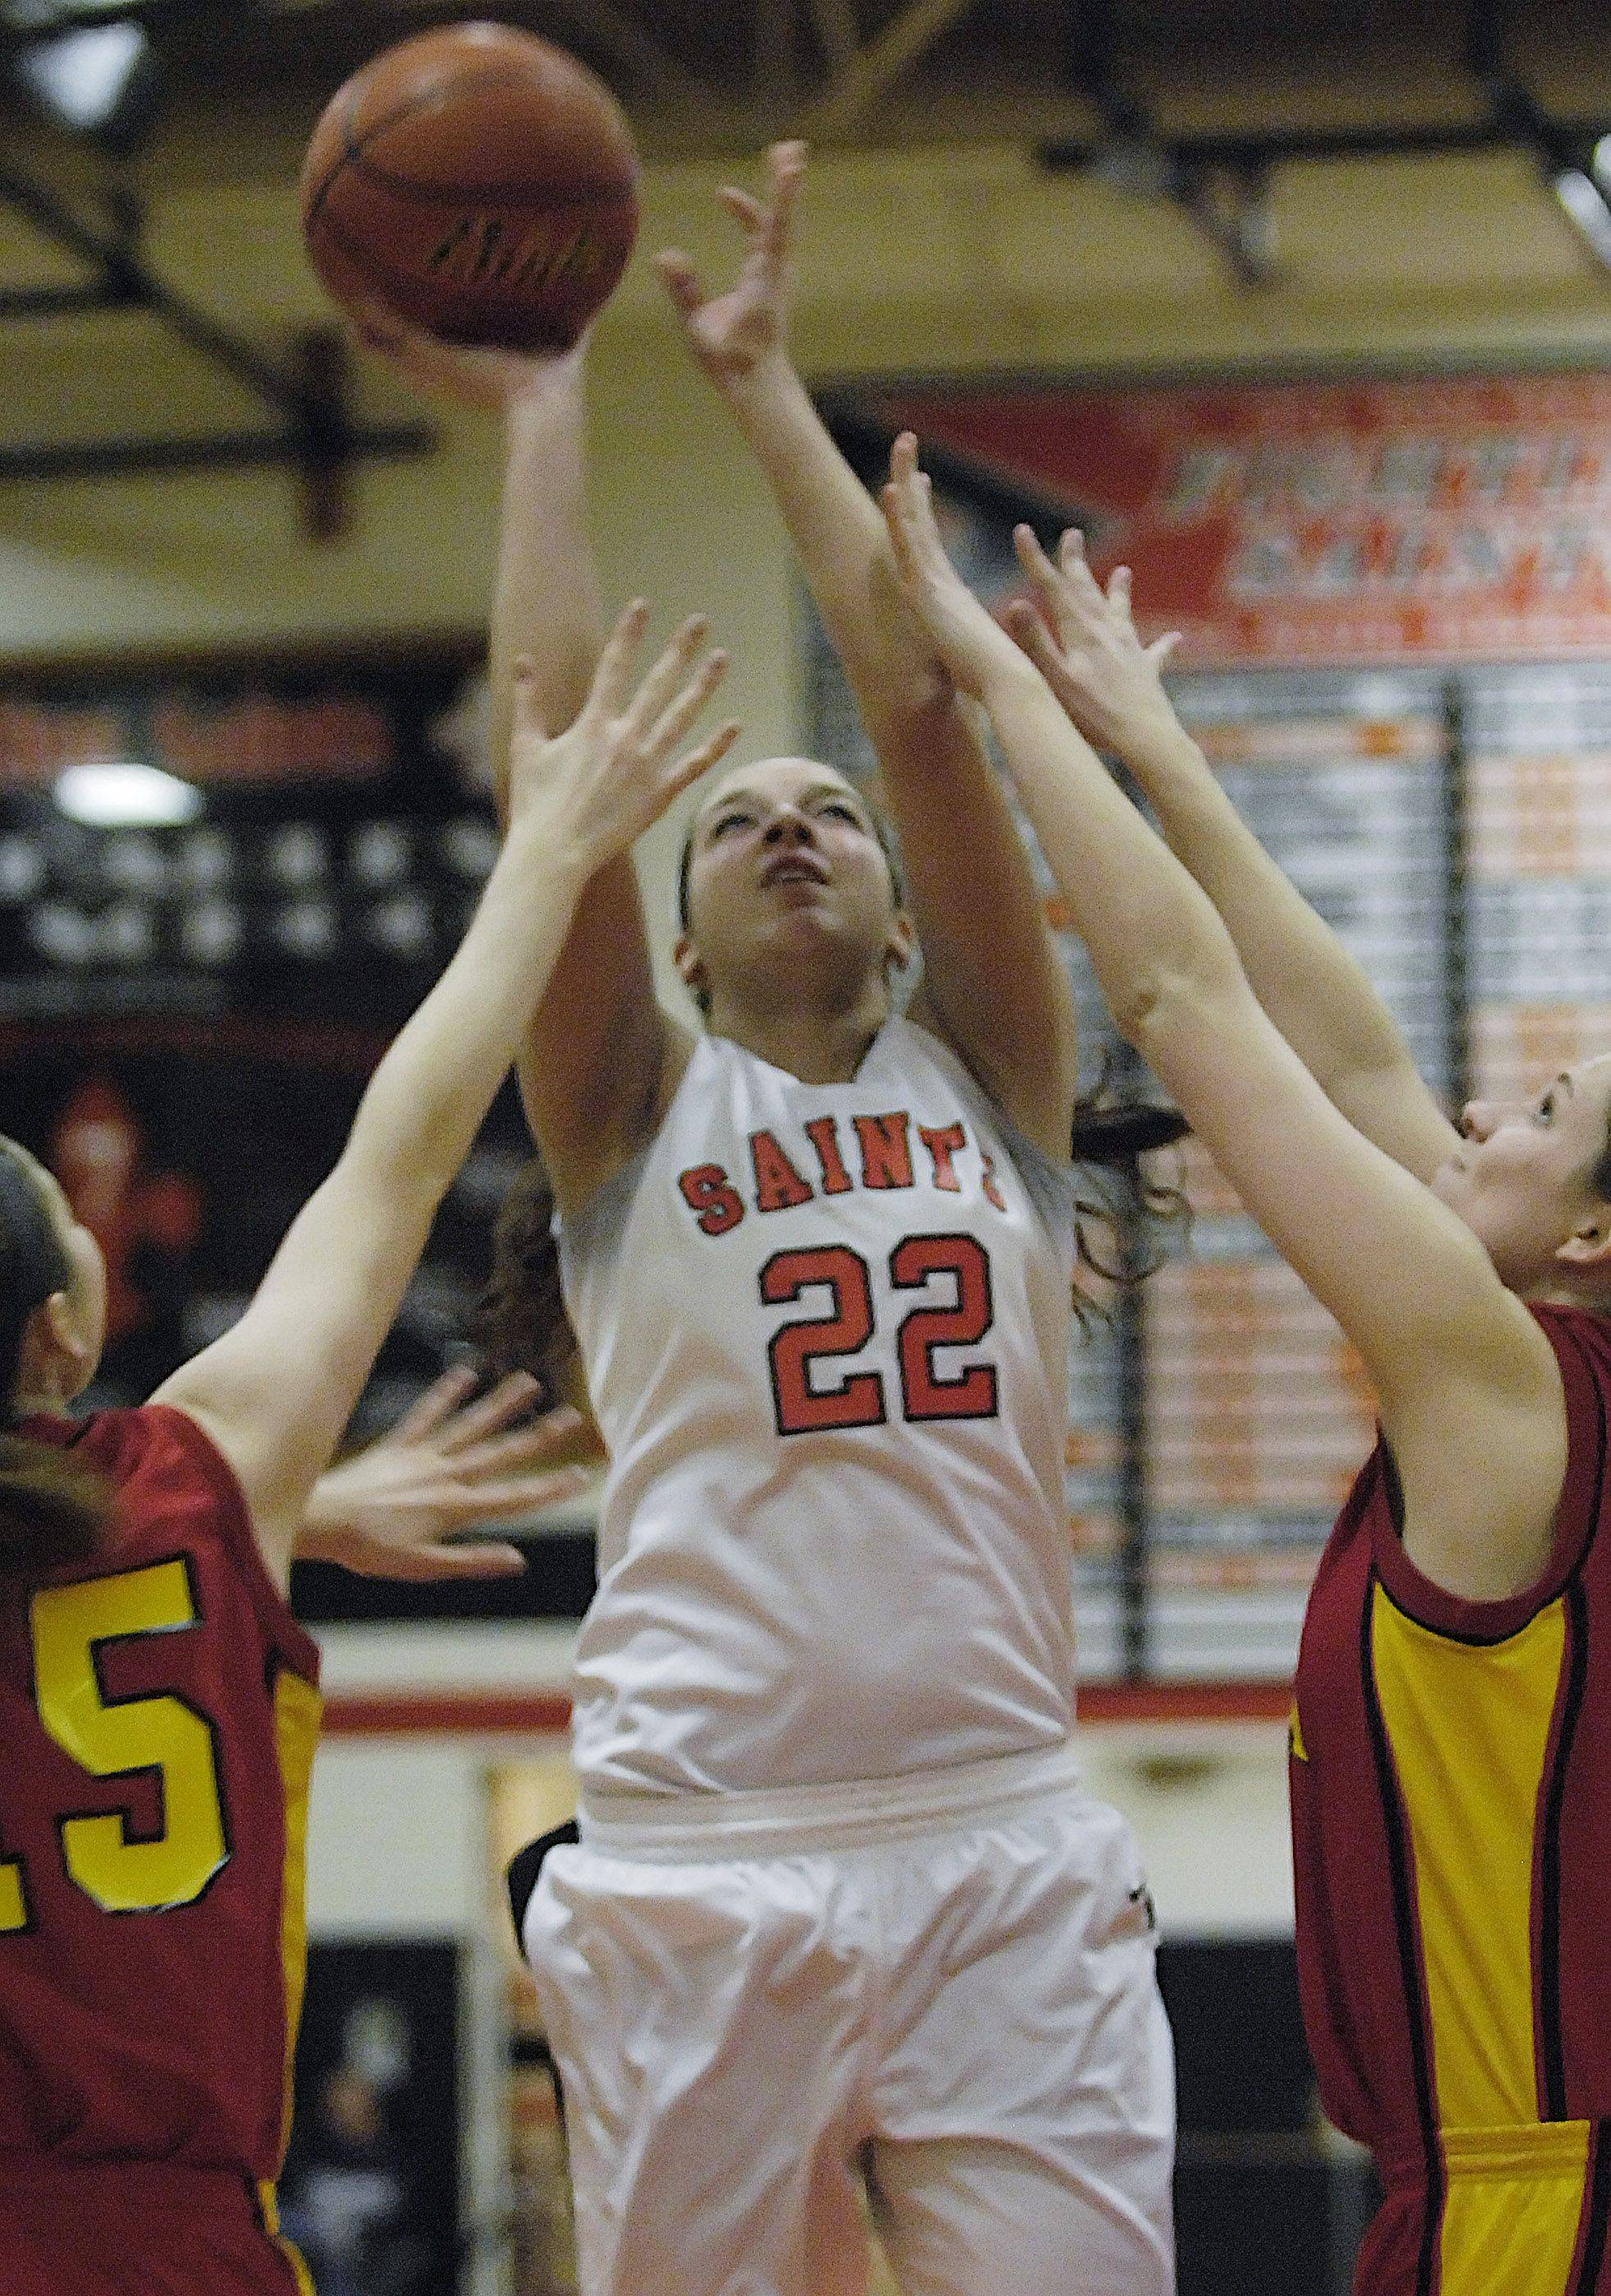 Images from the Batavia vs. St. Charles East girls basketball game Thursday, December 9, 2010.